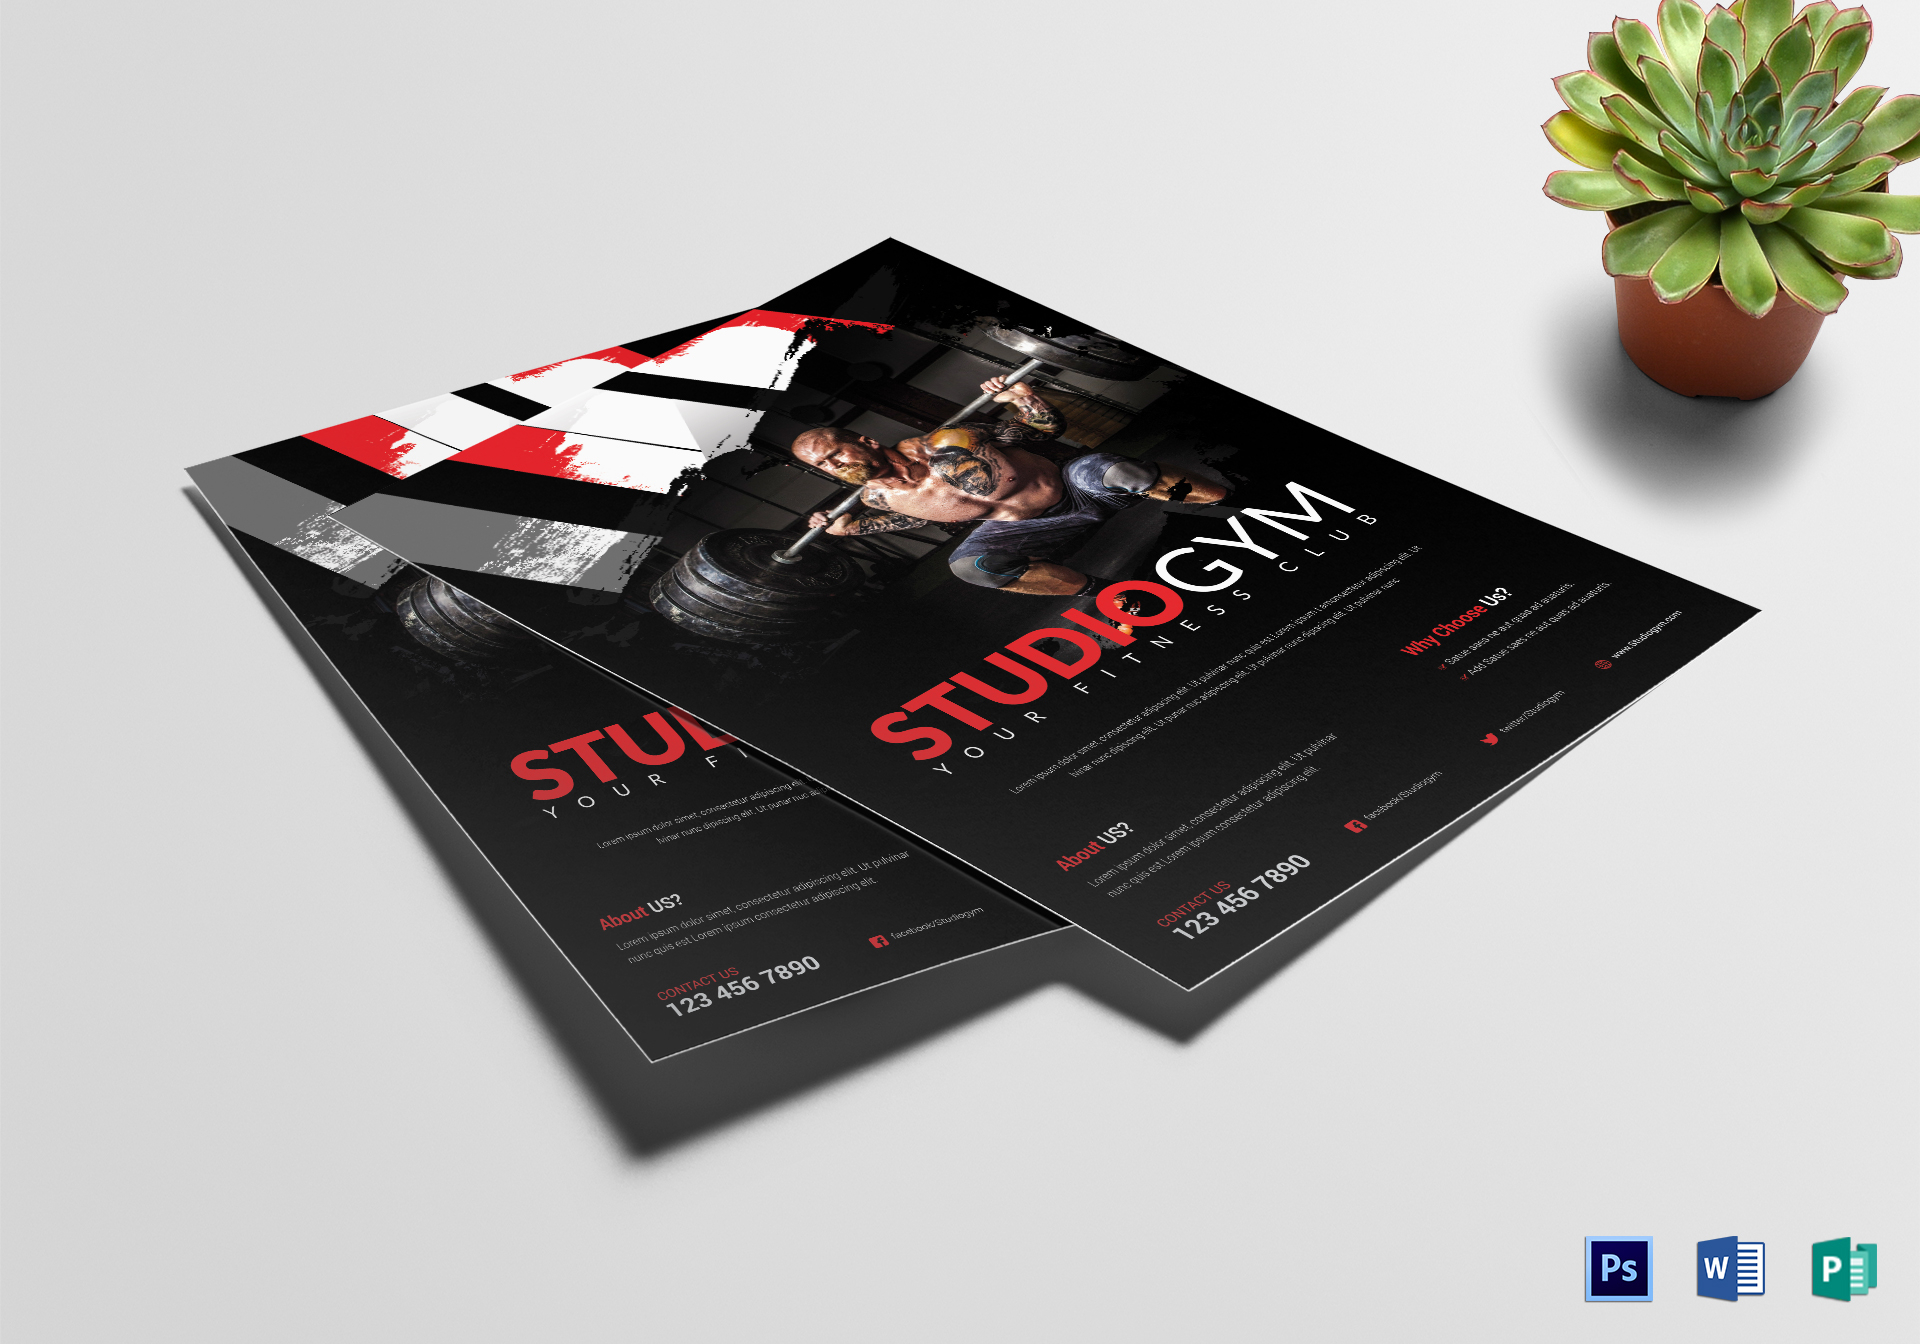 studio gym flyer design template in word psd publisher